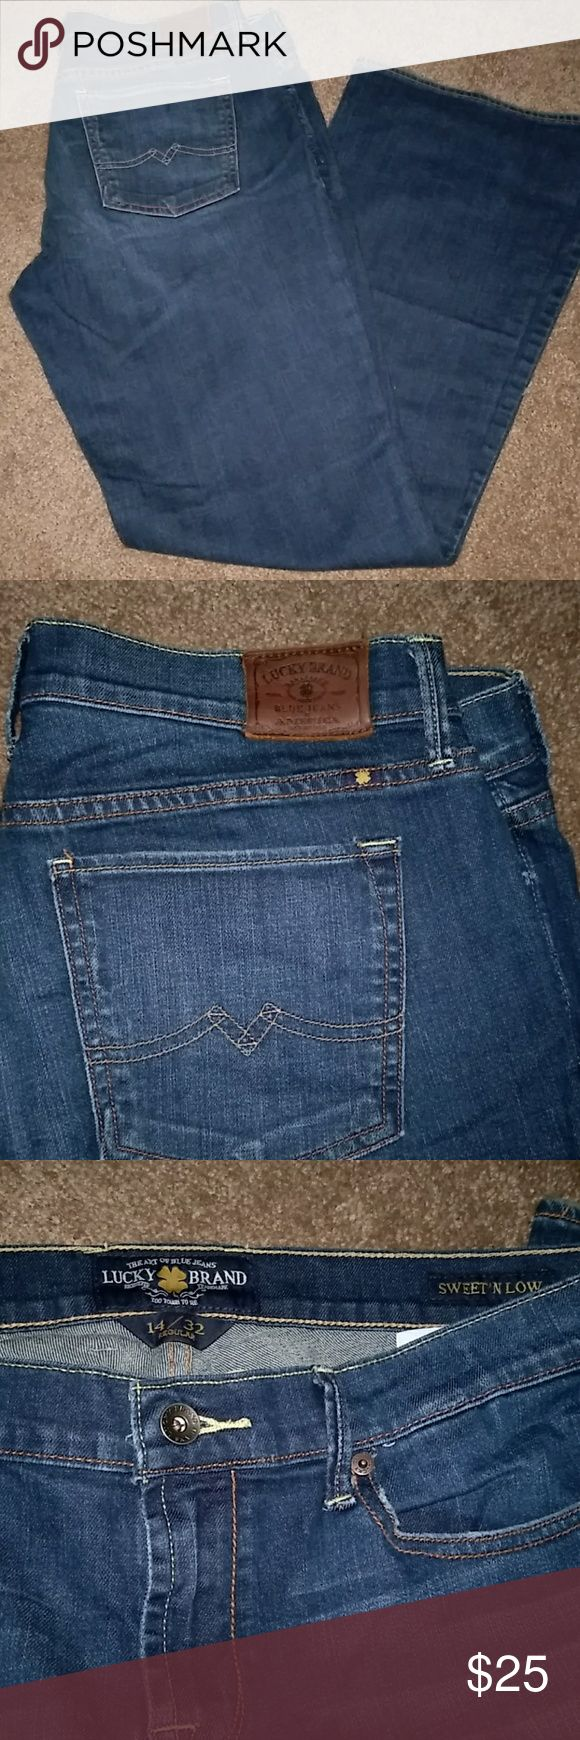 LUCKY BRAND SWEET N LOW BLUE JEANS Lucky brand ladies sweet n low blue jeans. Excellent condition! Size is 14/32 regular. Only worn a couple of times. Lucky Jeans Boot Cut